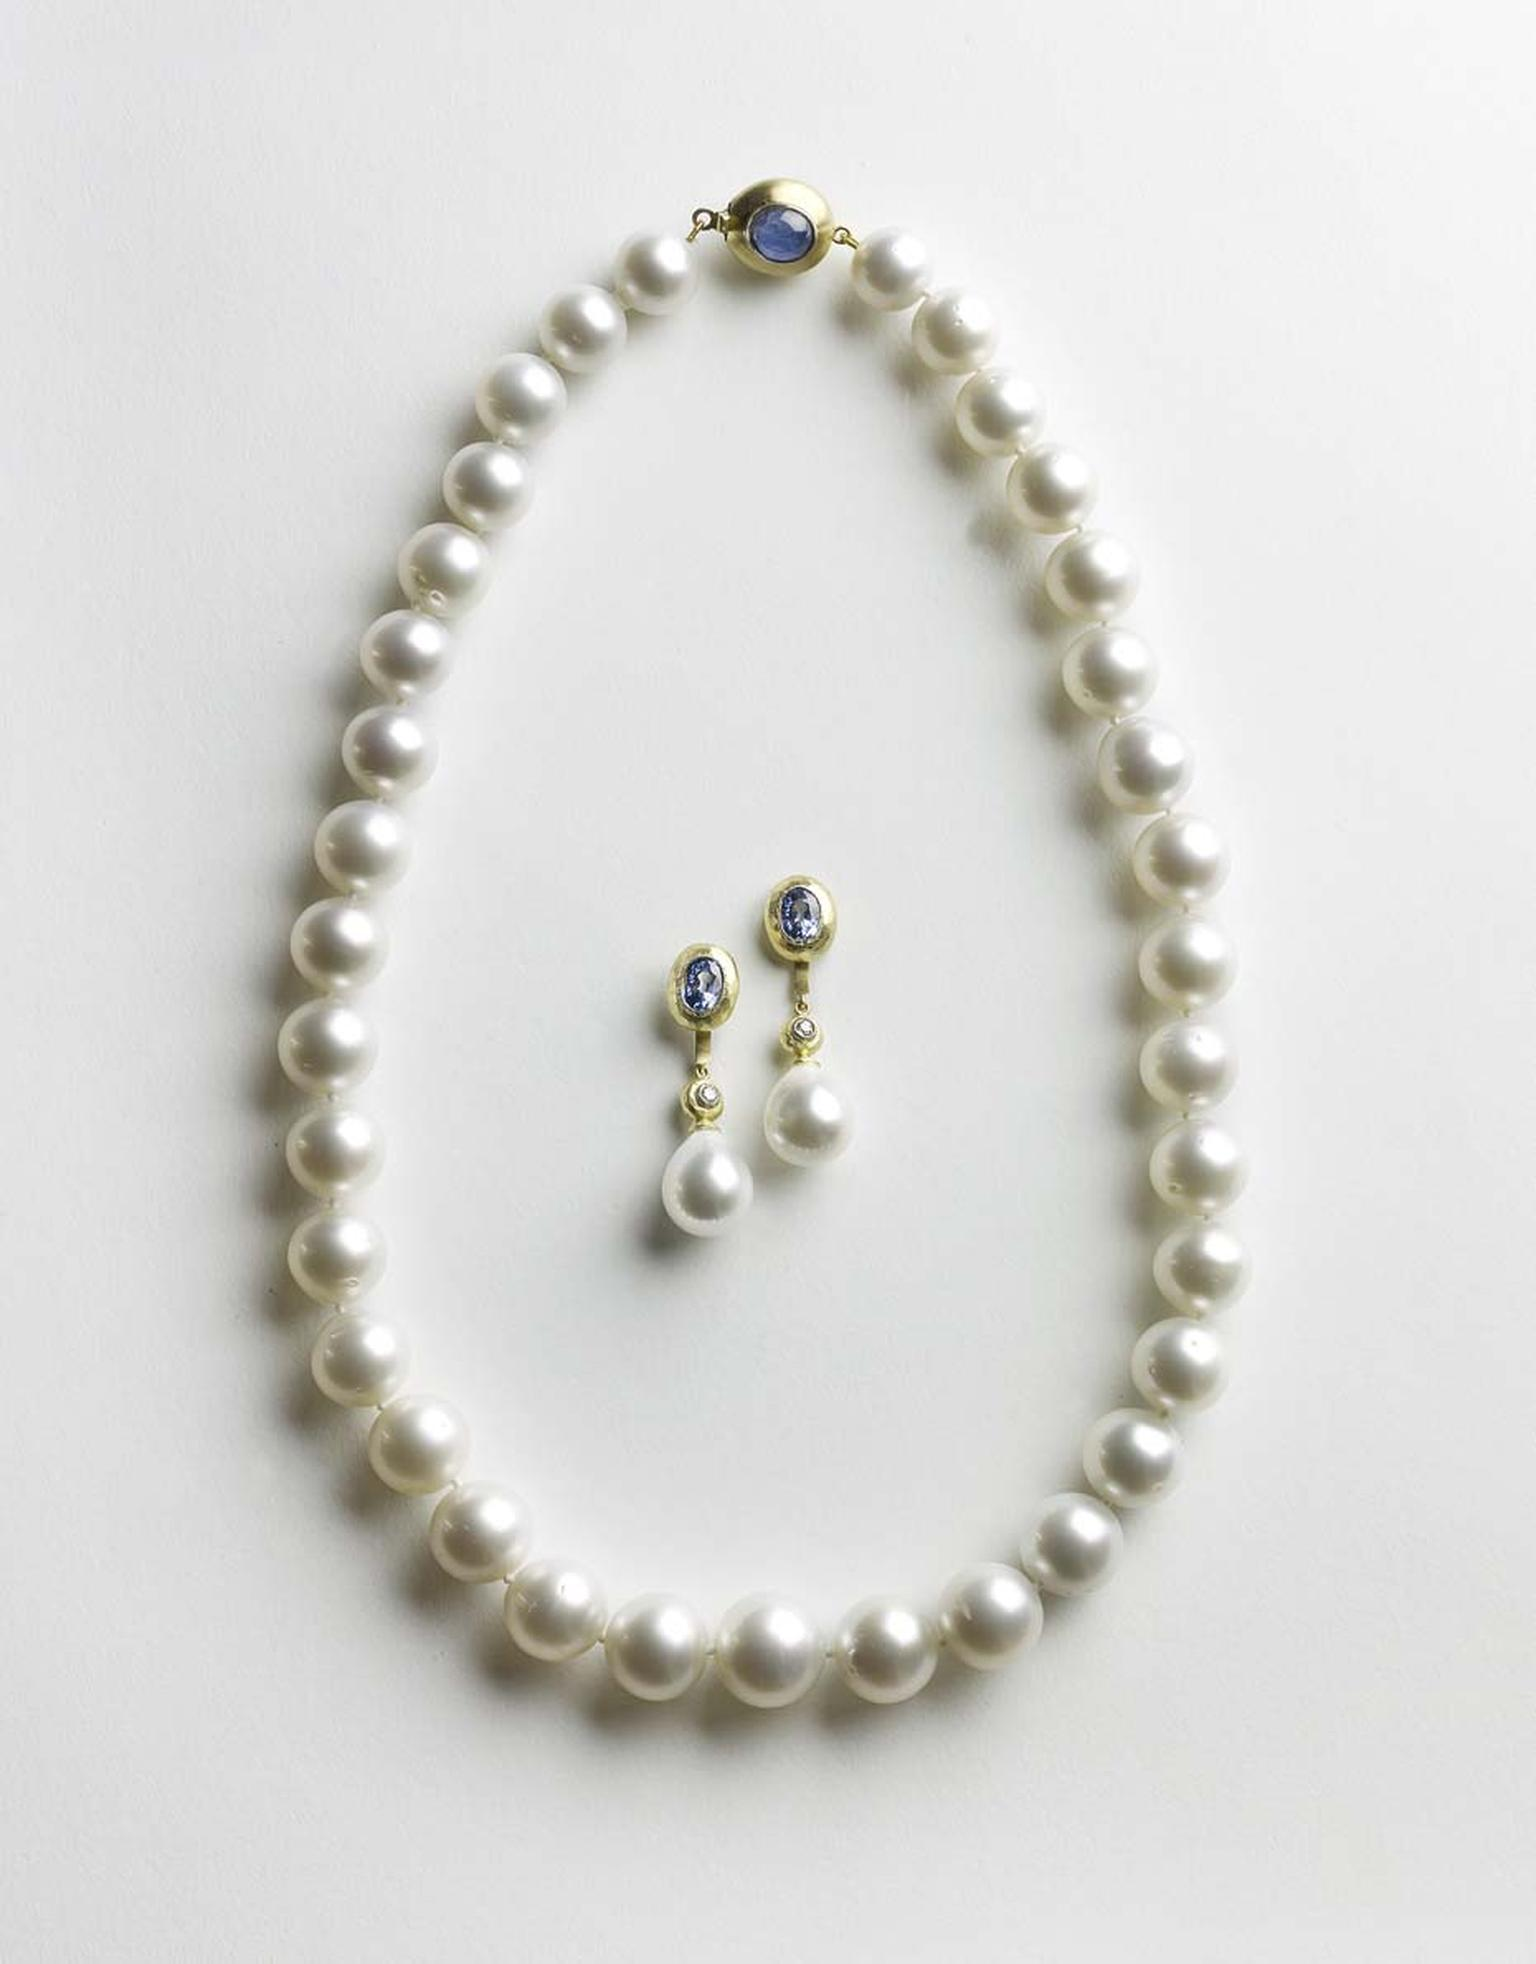 Julia Lloyd George South Sea pearl necklace in yellow gold with a handmade star sapphire clasp (£5,500) with matching sapphire earrings with detachable South Sea pearl drops (£4,250)